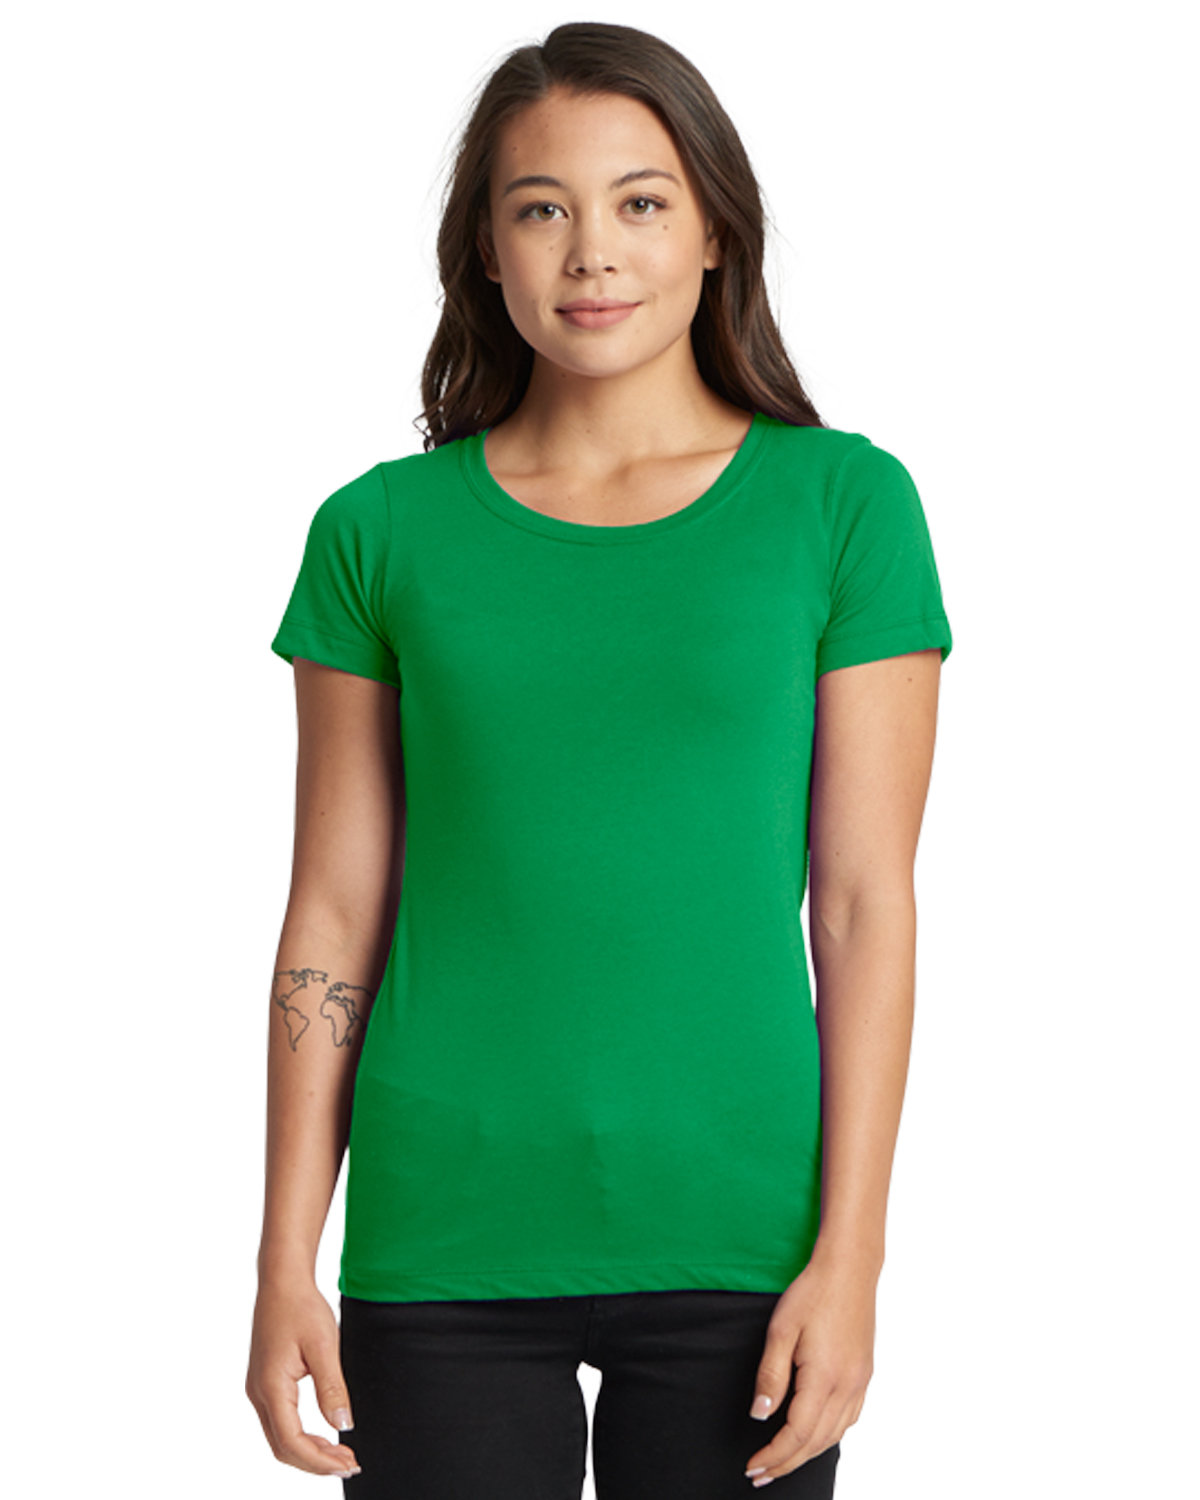 Next Level Ladies' Ideal T-Shirt KELLY GREEN